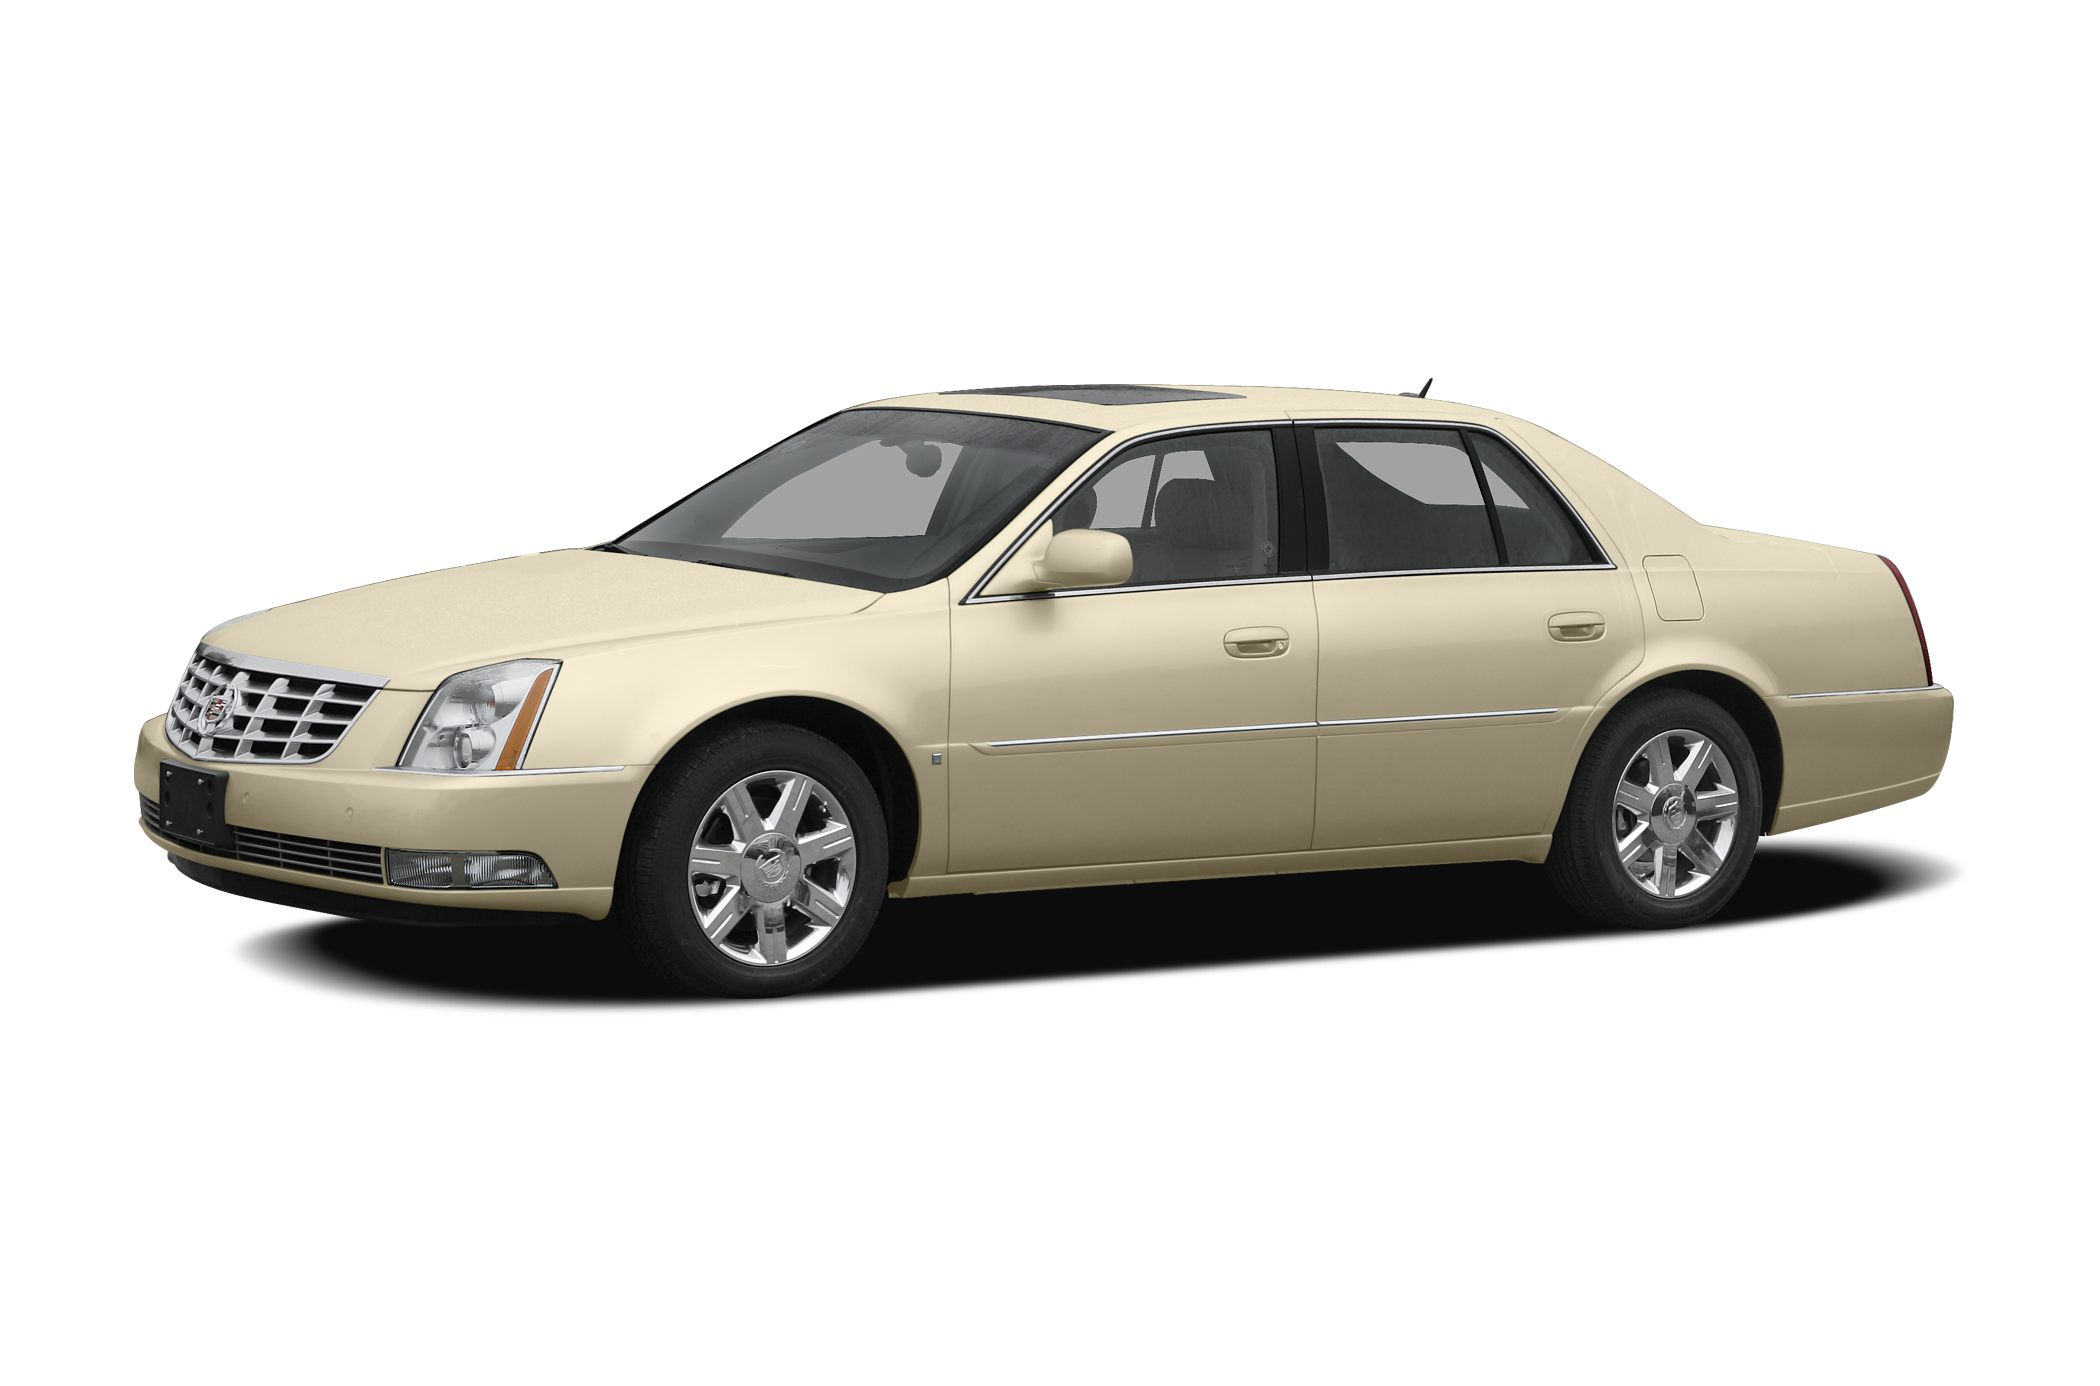 2007 Cadillac DTS Livery Miles 61106Color Brown Stock PG10719A VIN 1G6KD57Y37U213083